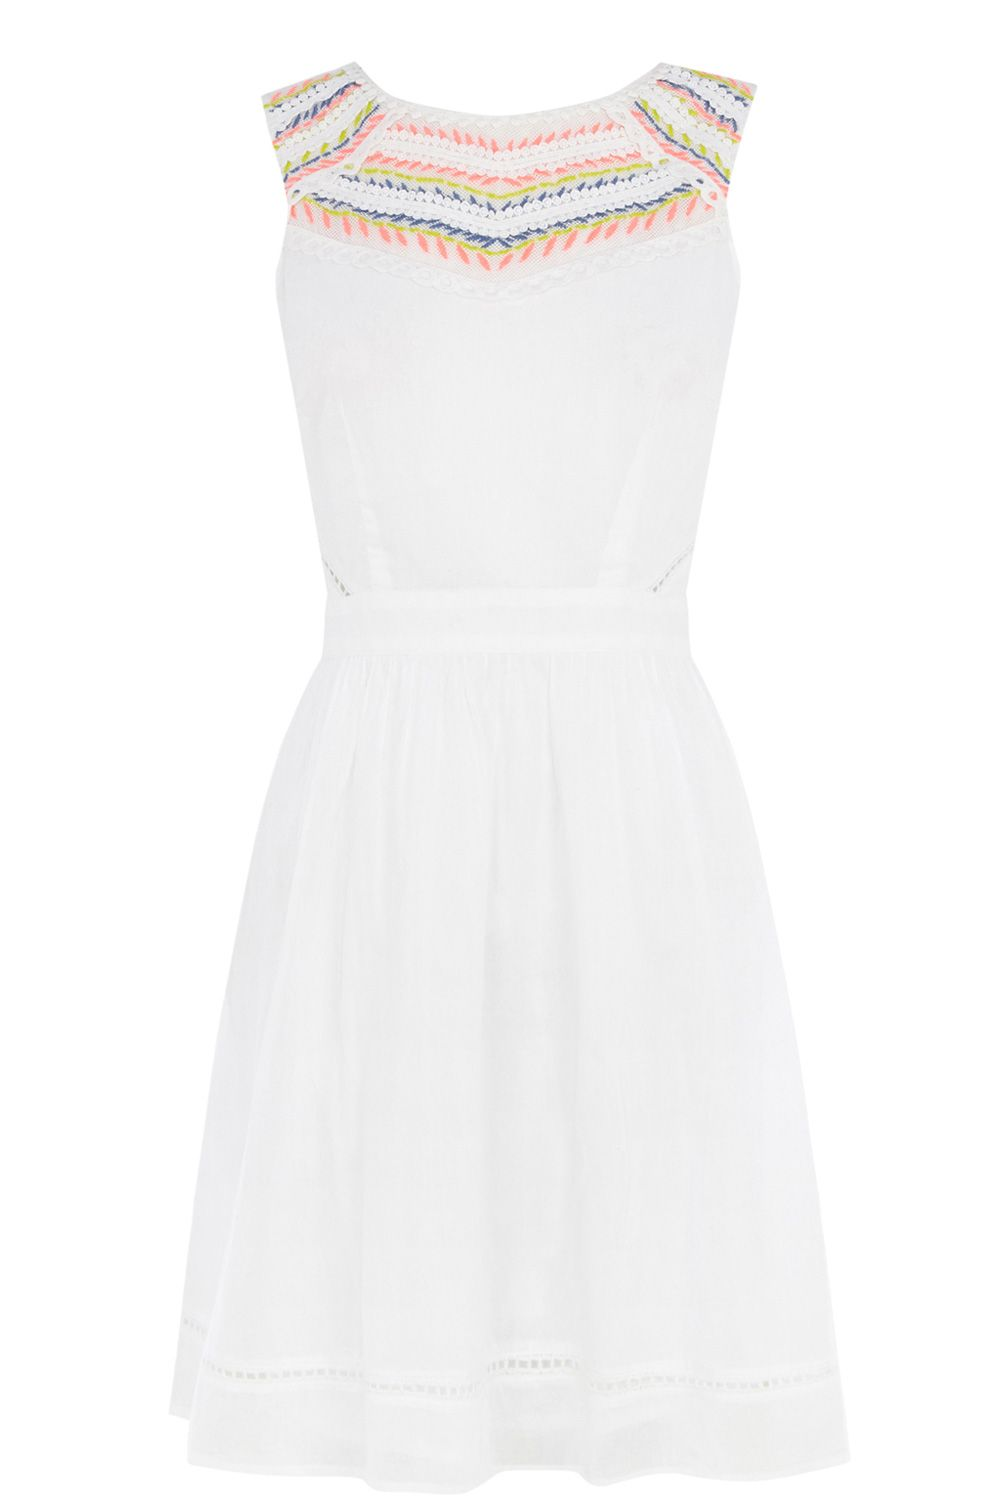 Embroidered yoke skater dress